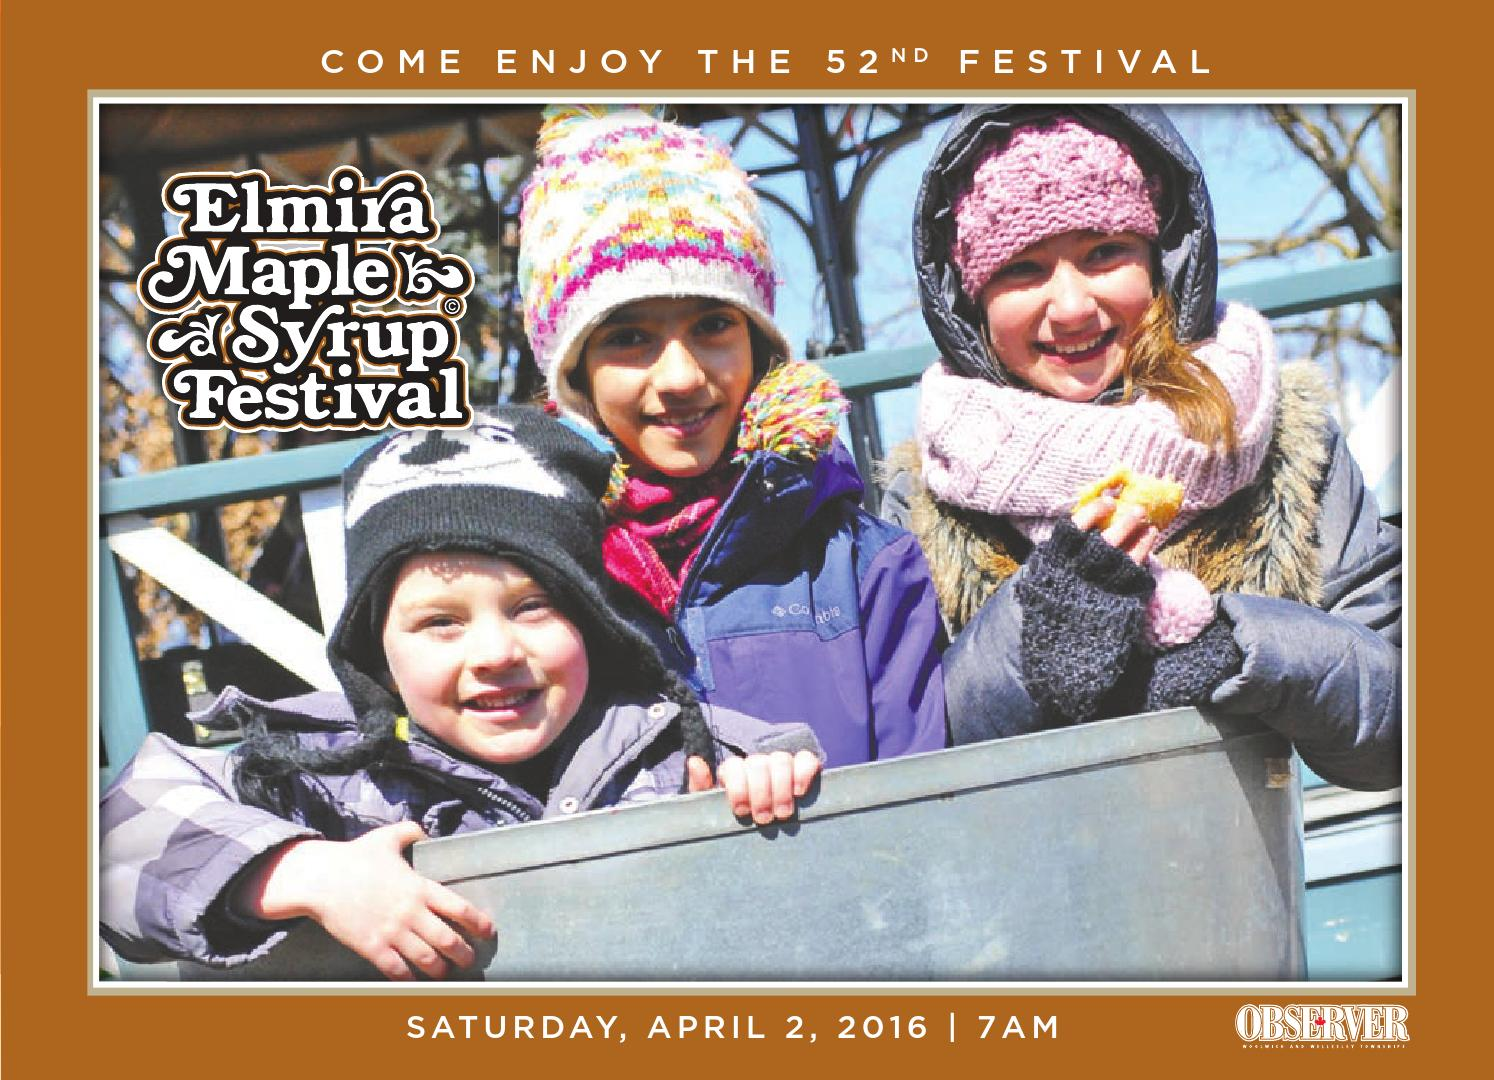 9af57822a2f Elmira maple syrup festival guide 2016 by Woolwich Observer - issuu